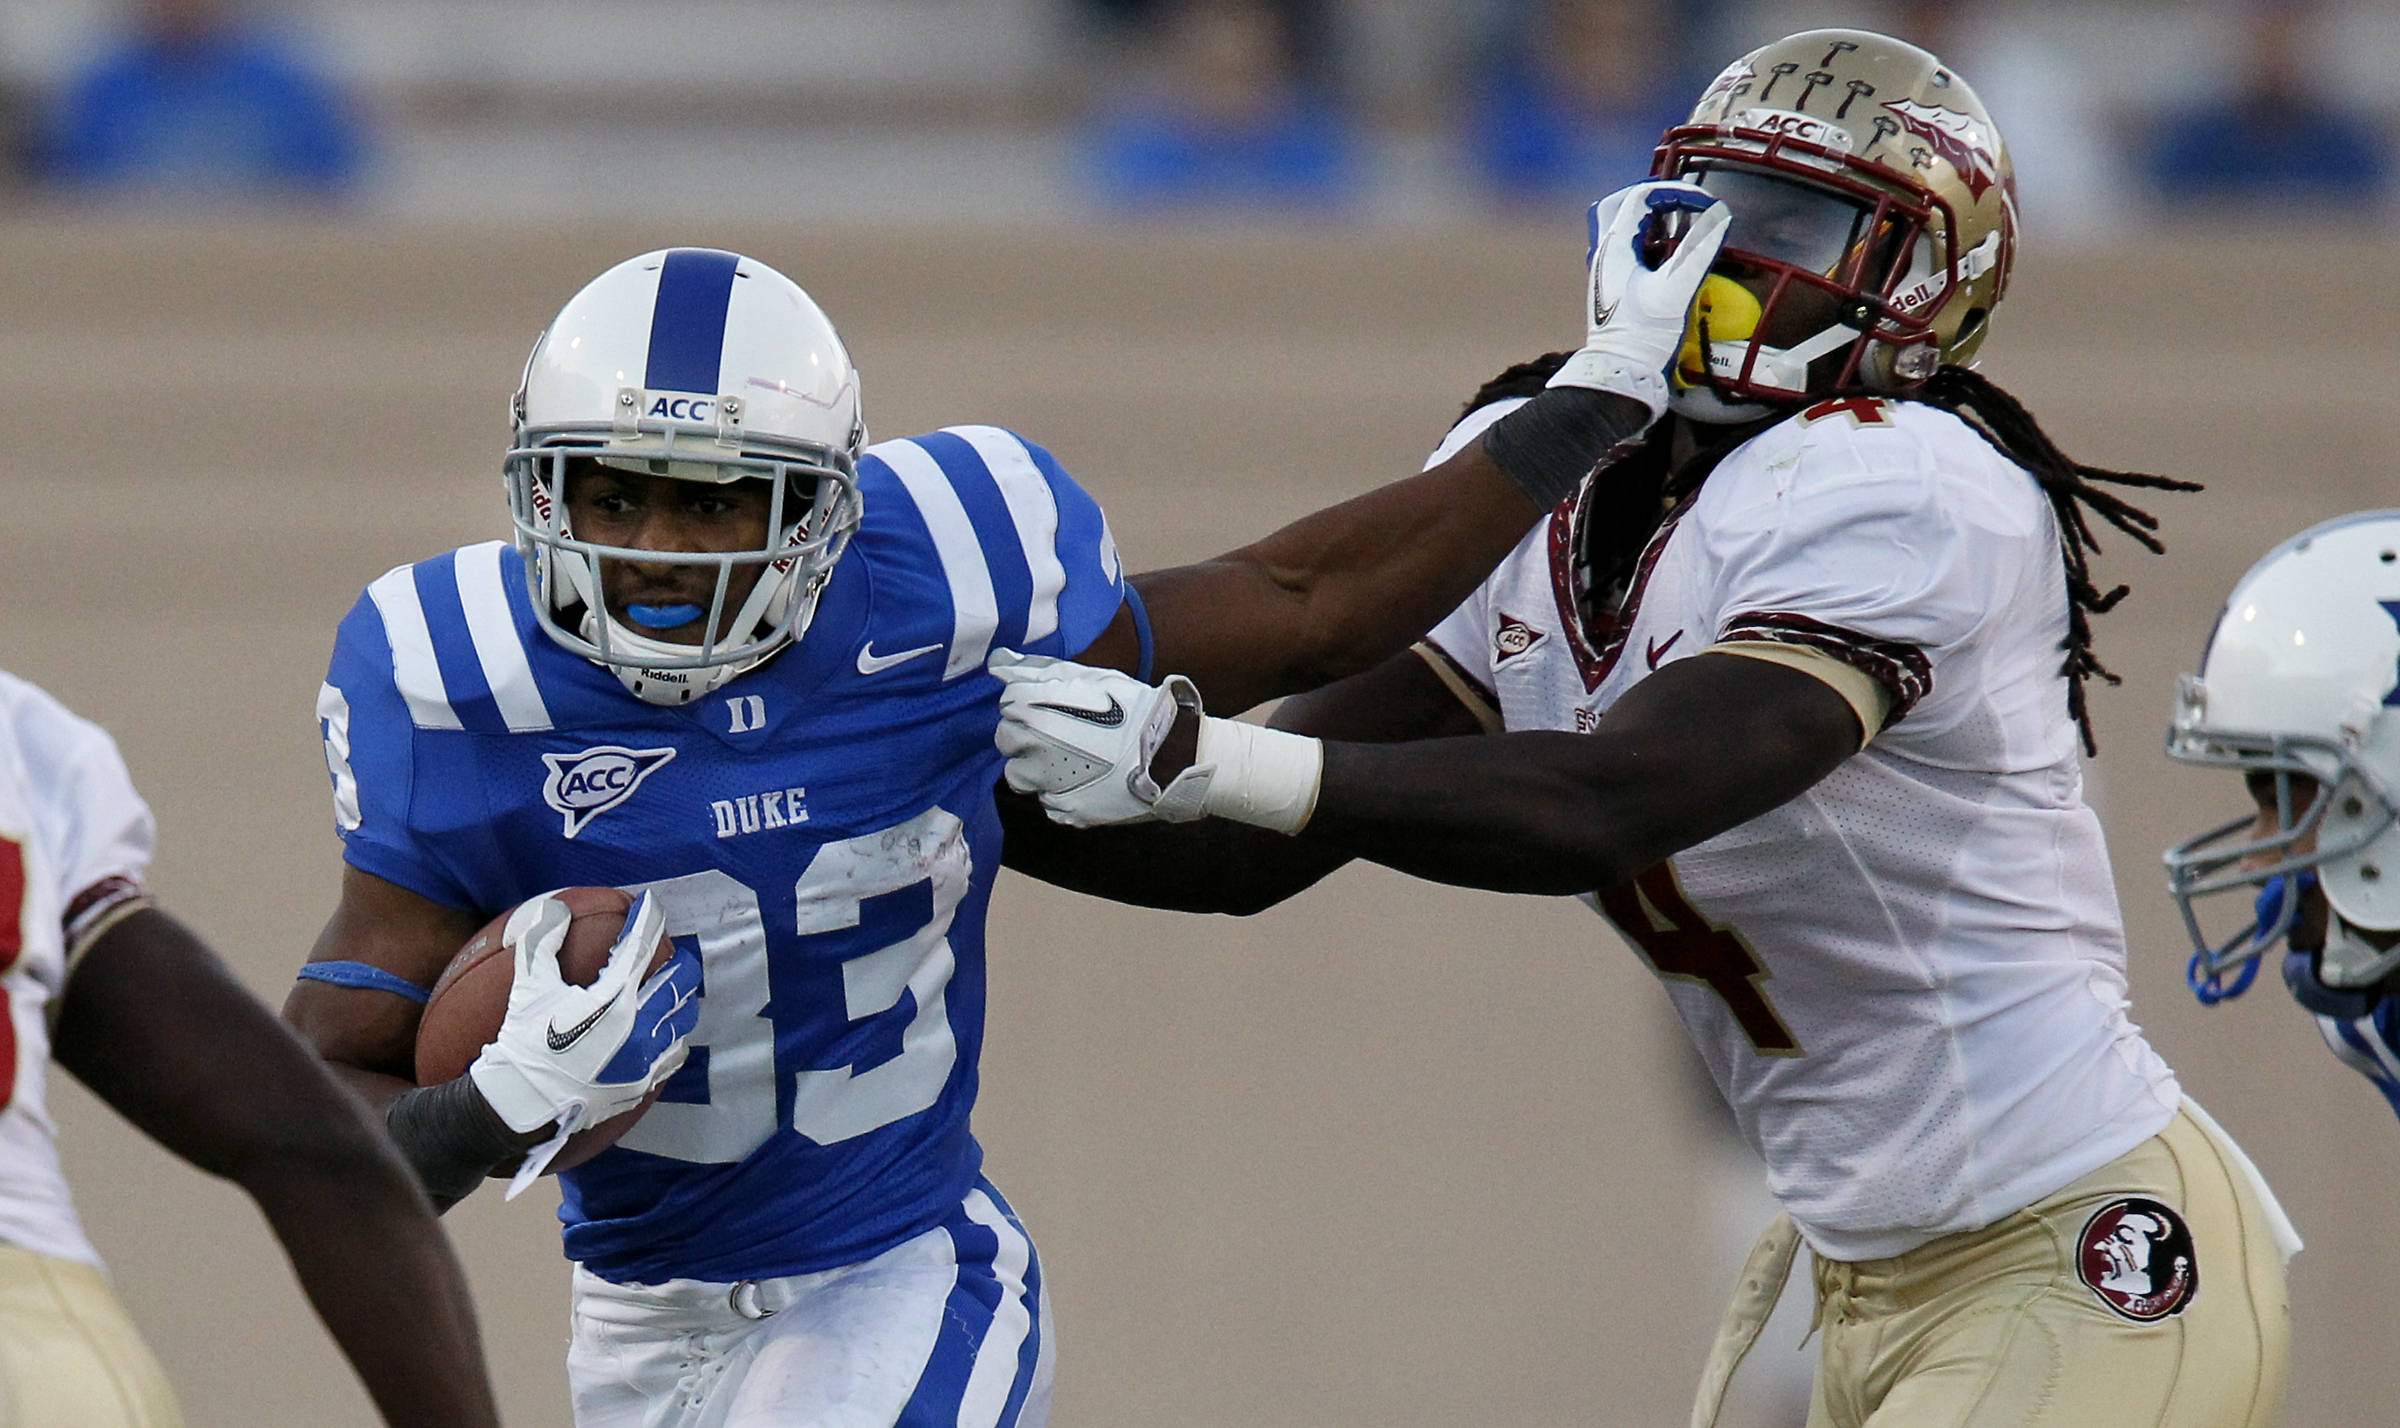 Florida State safety Terrance Parks (4) withstands a stiff-arm and tries to bring down Duke running back Desmond Scott. (AP Photo/The News & Observer, Chuck Liddy)